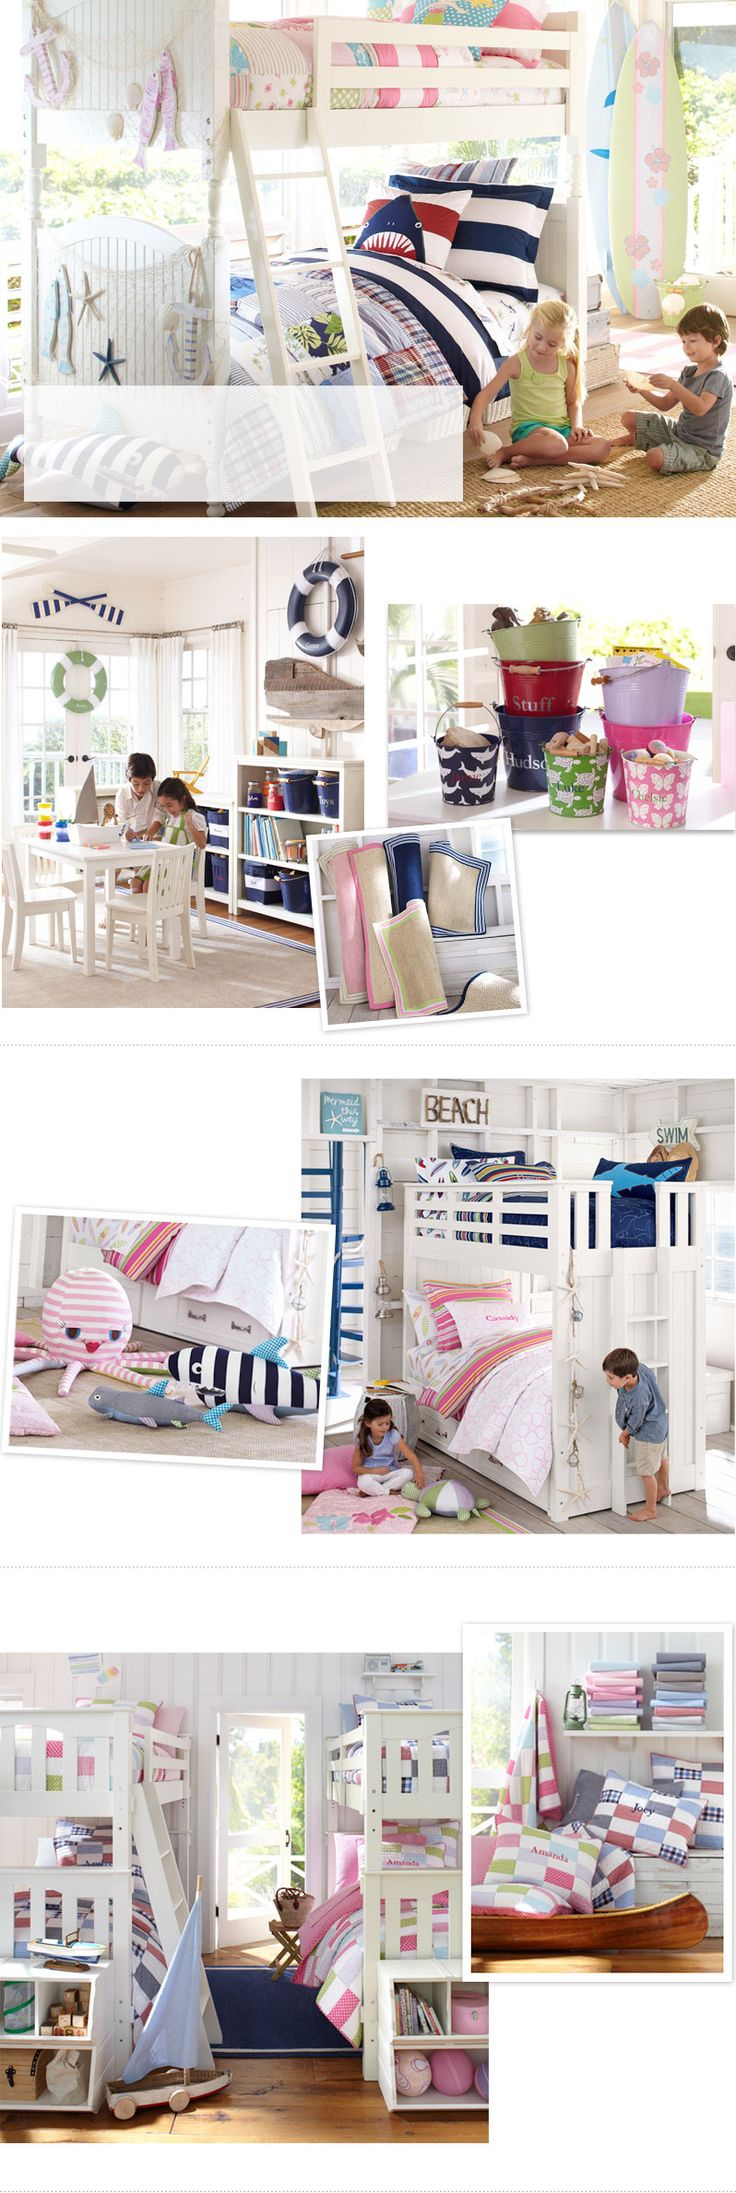 Pottery Barn Girls Bedrooms 26 Best Images About Boy Love On Pinterest Room Boys Nursery